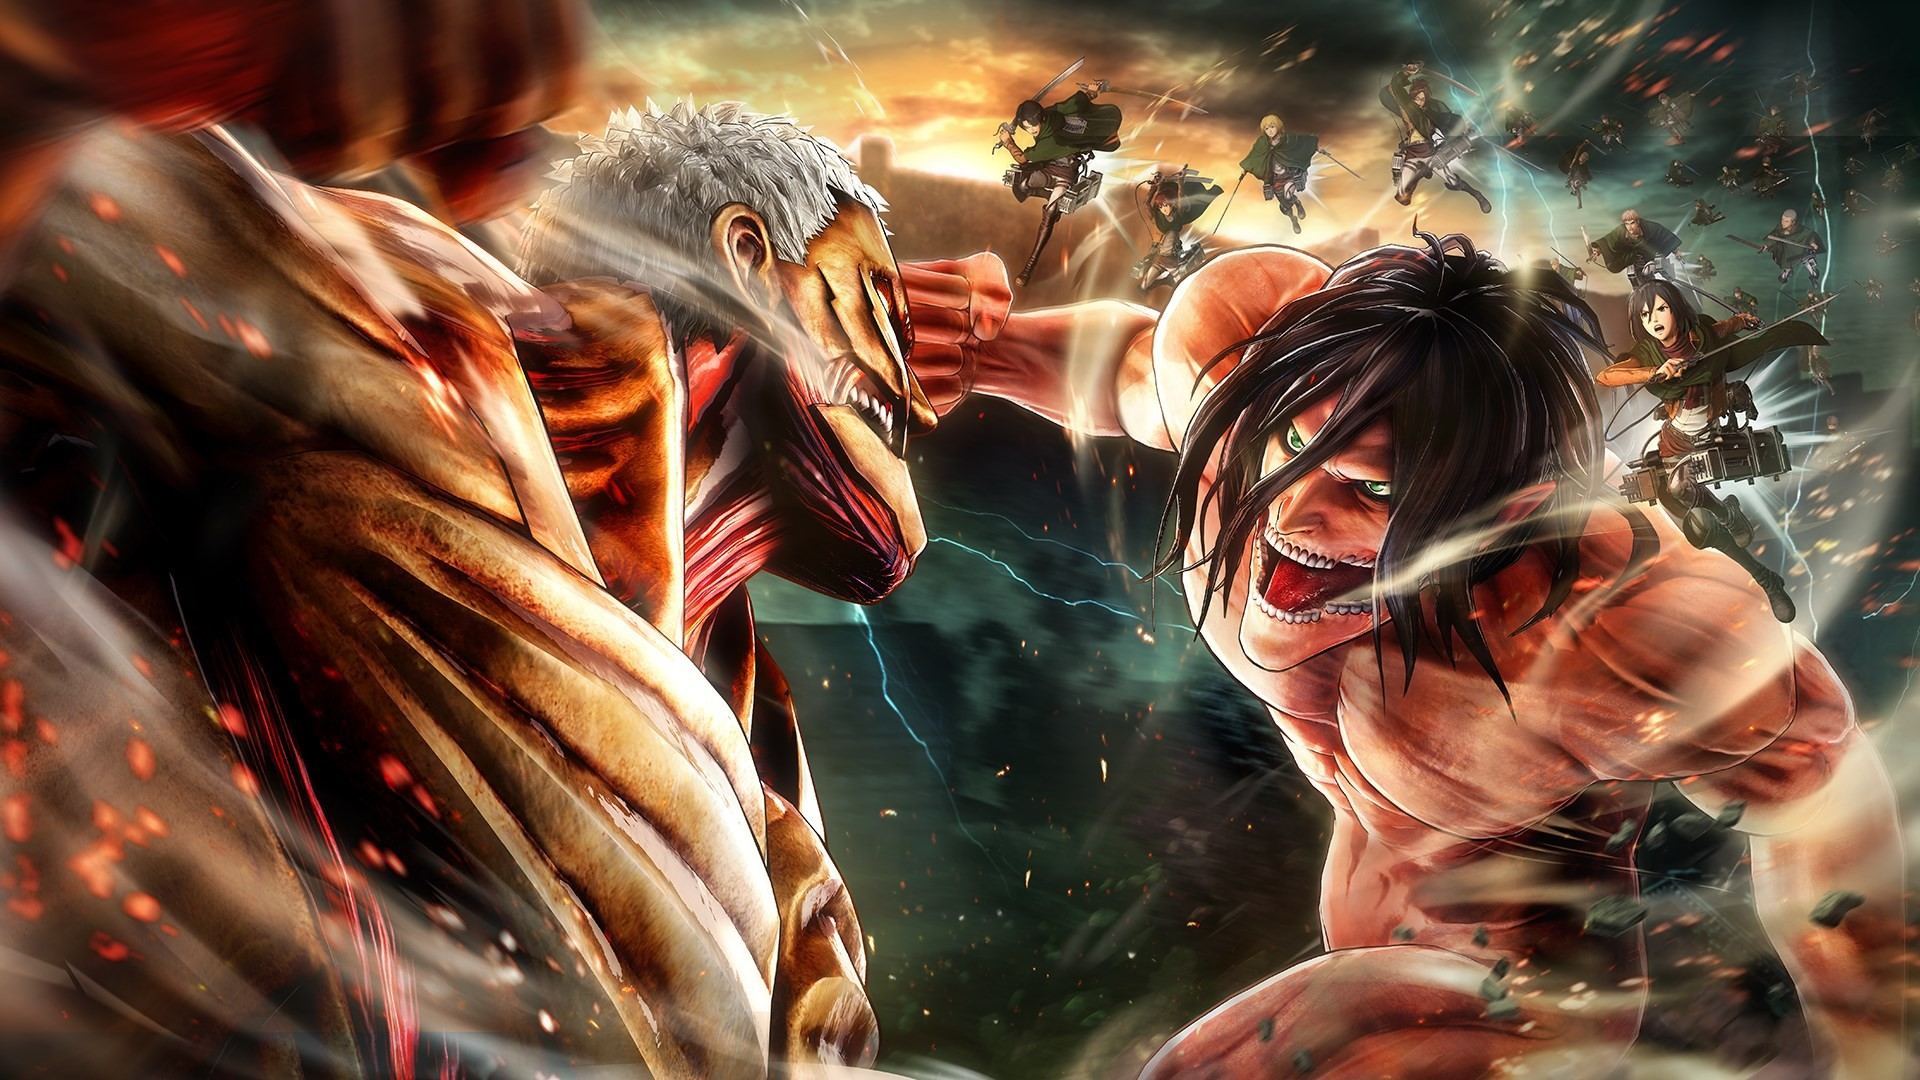 Attack On Titan Chapter 130: Release Date, Spoilers, and ...